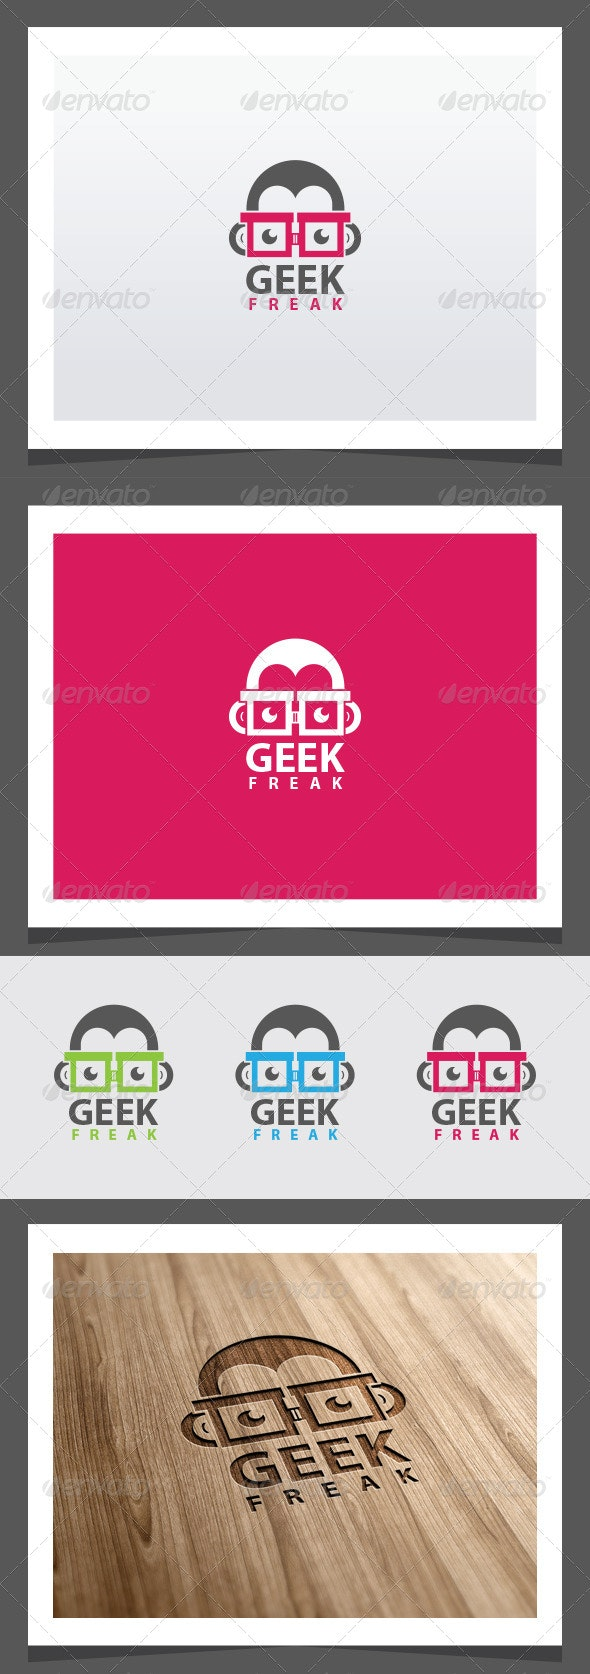 Geek Freak Logo Template - Vector Abstract